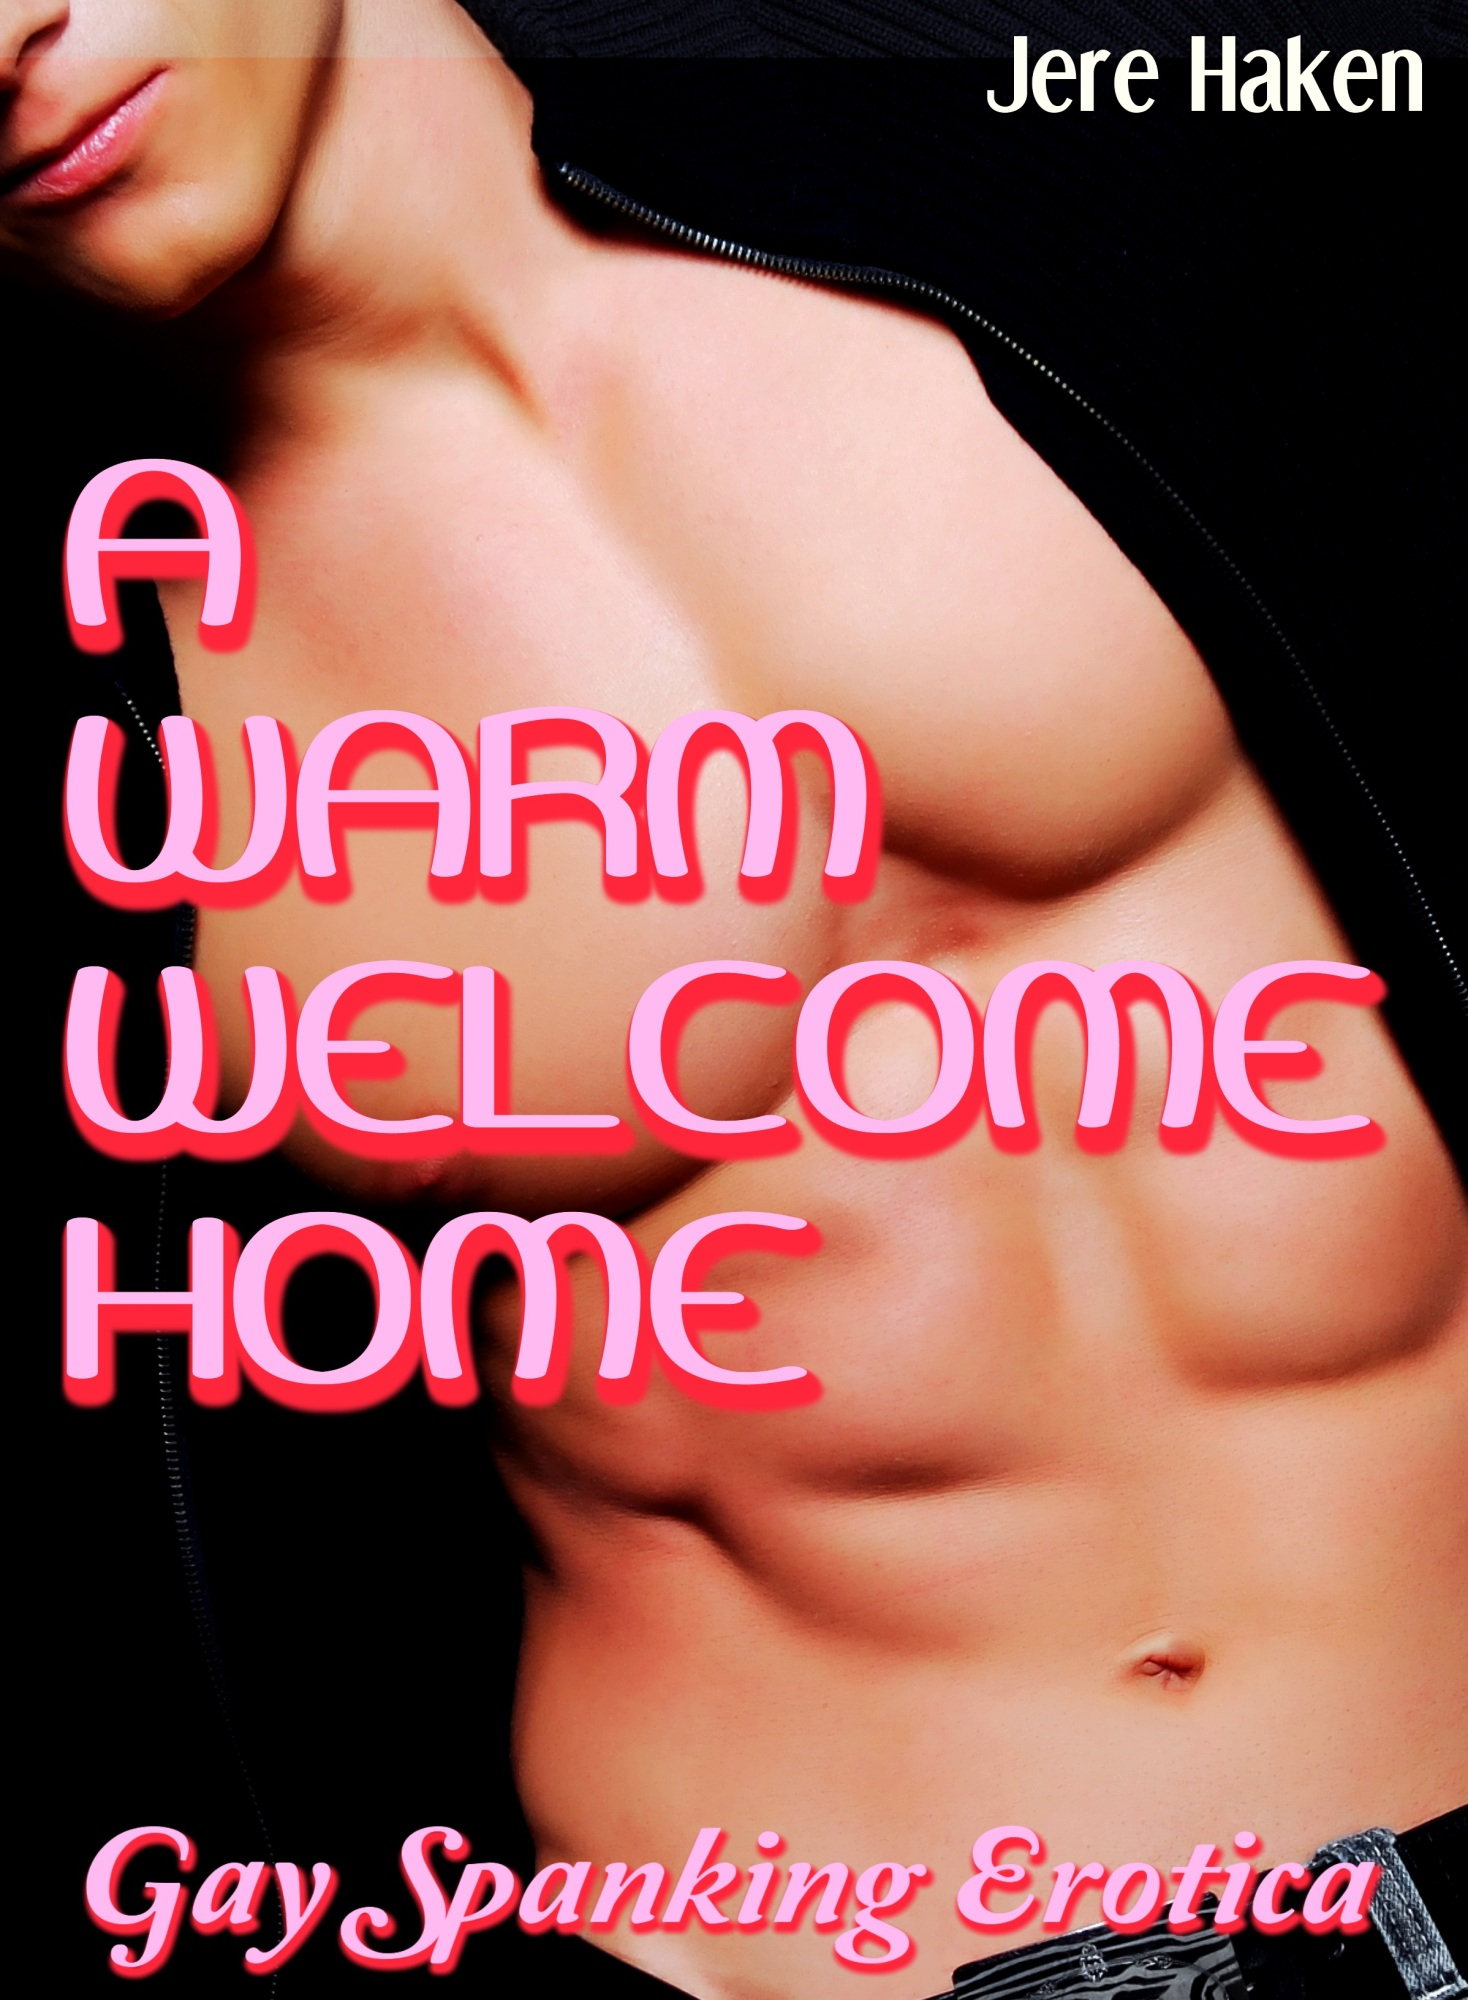 A Warm Welcome Home